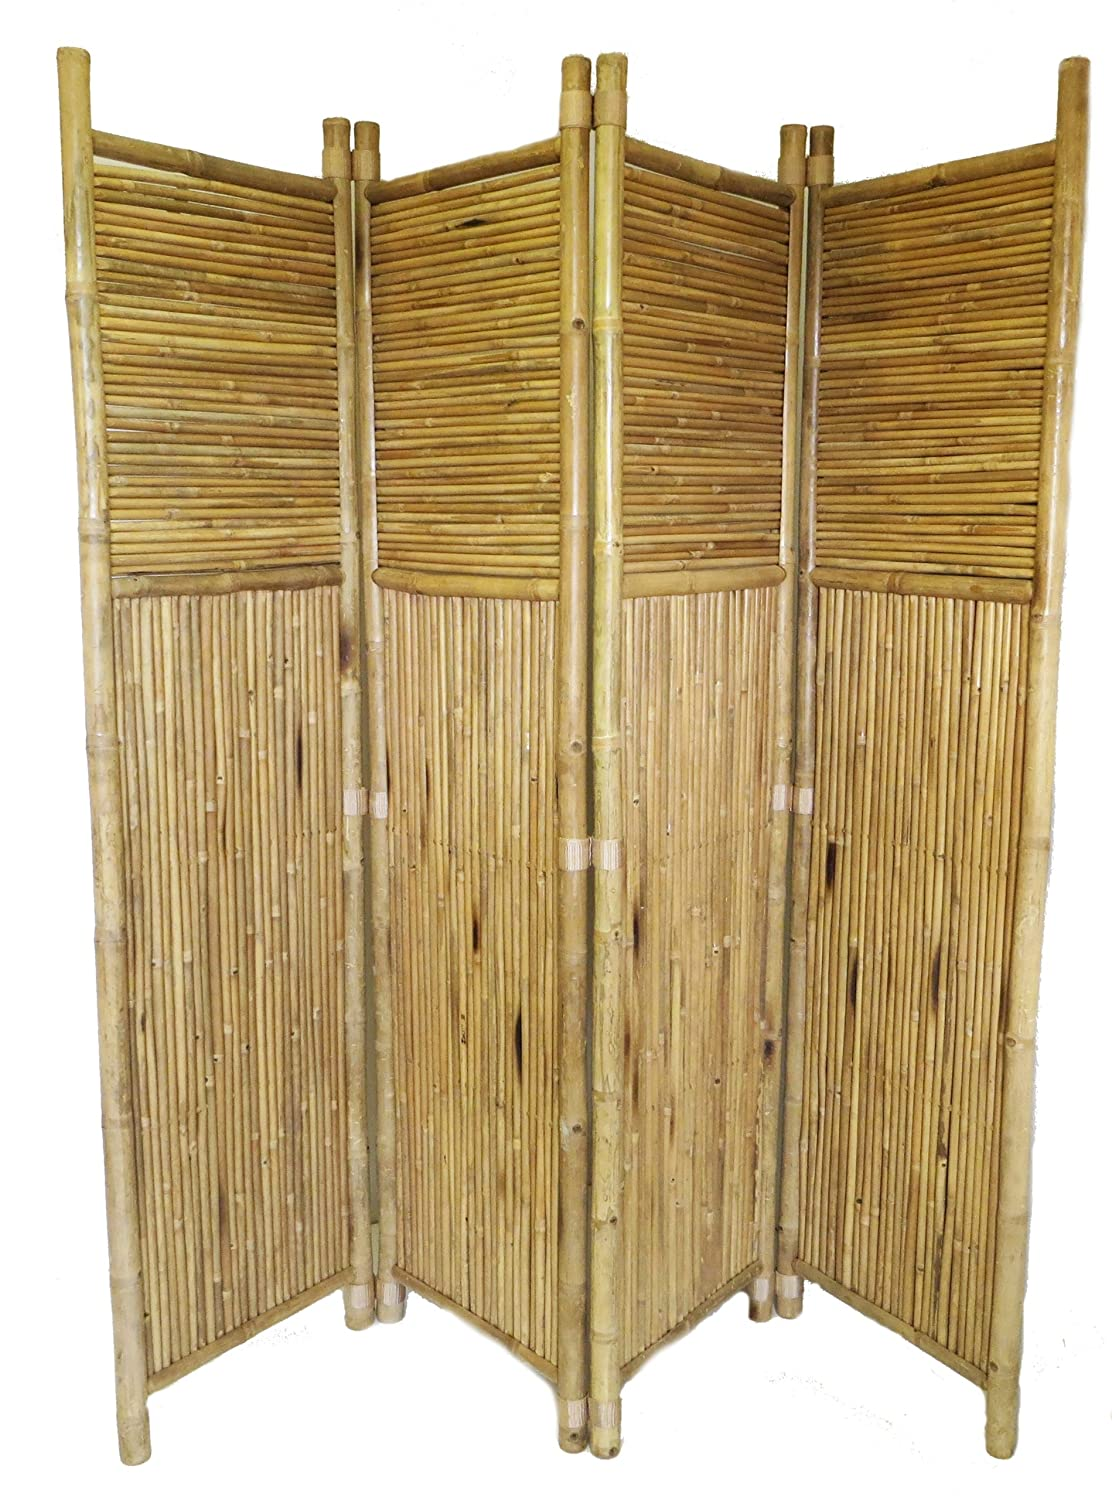 Amazon.com : Bamboo 4 Panel Screen : Outdoor Decorative Fences ...